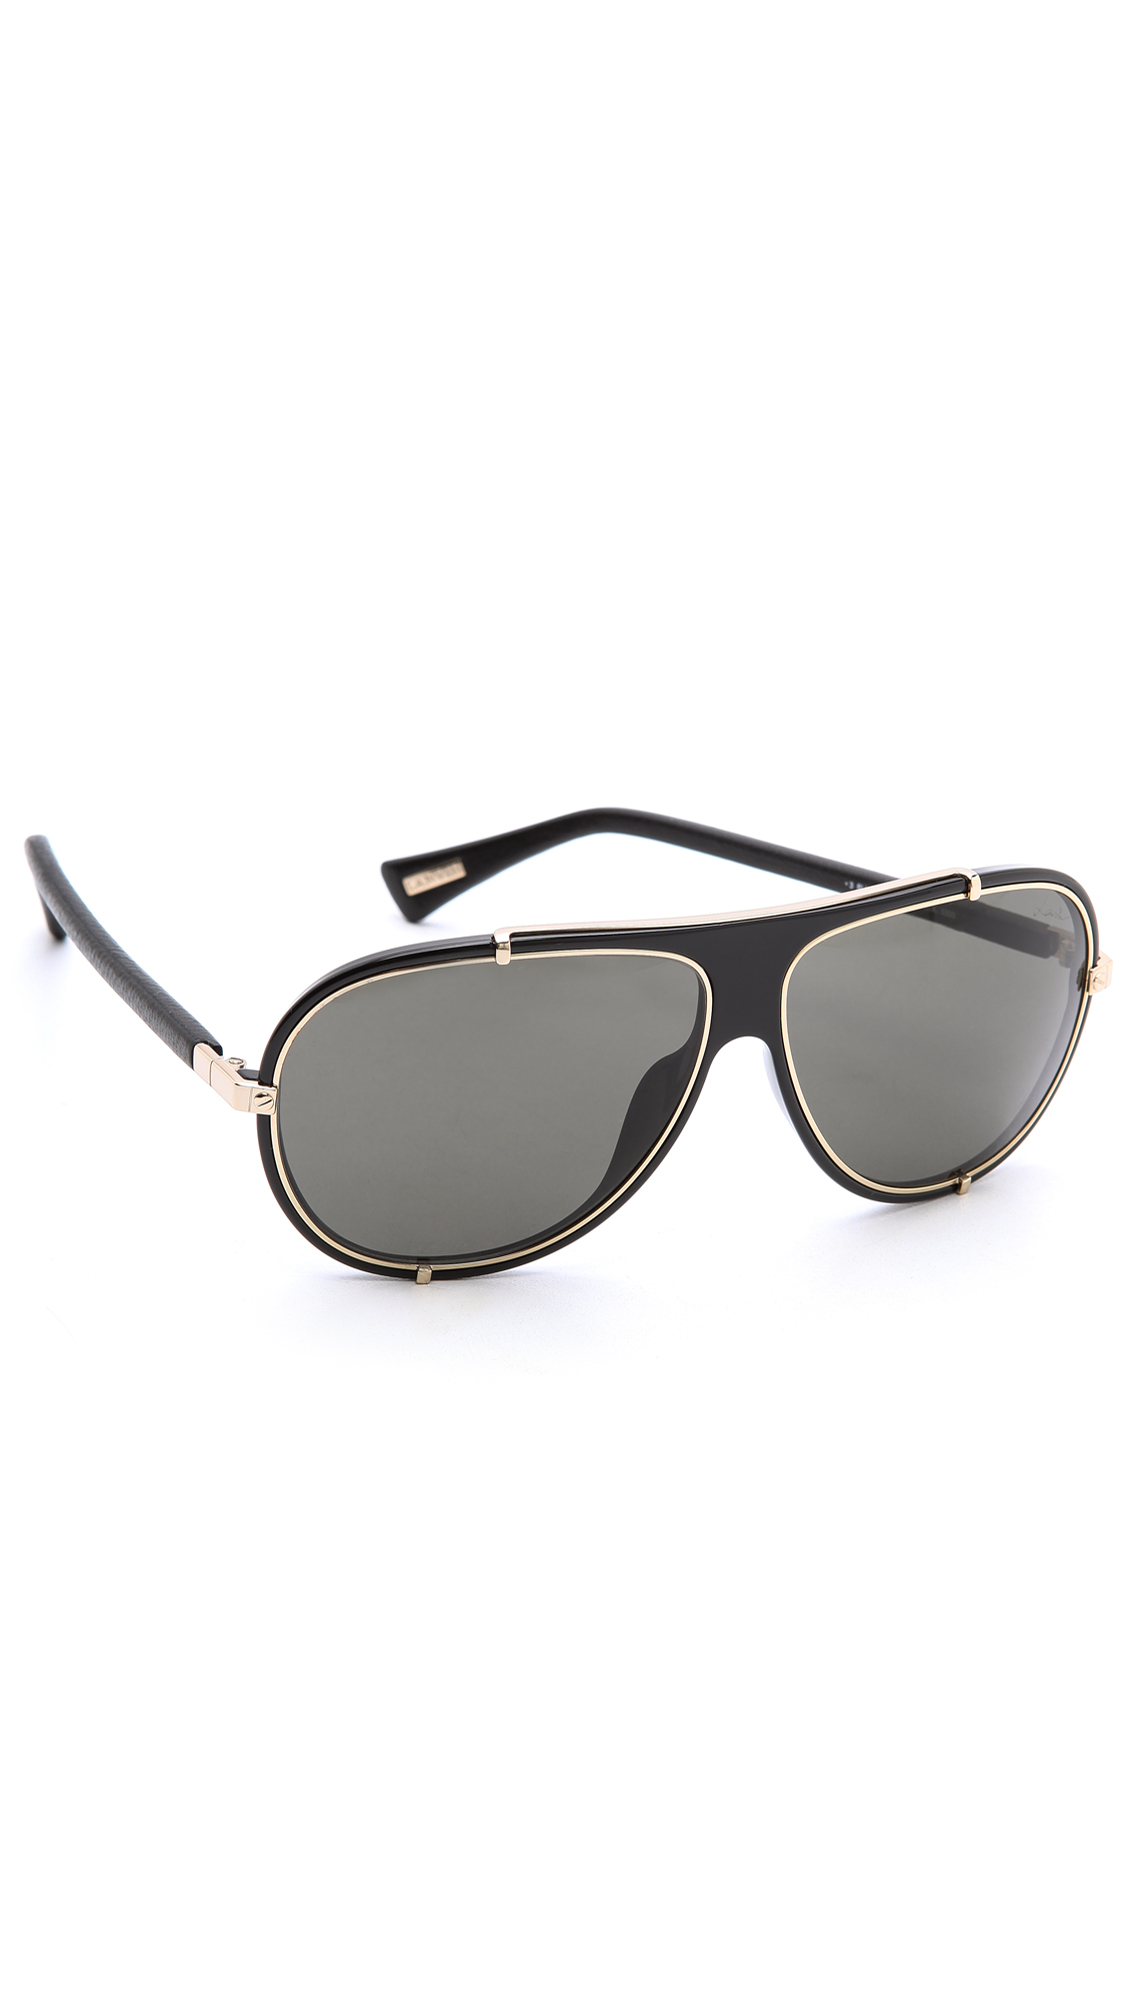 c2ba33fd0f07 Mens Aviator Sunglasses Black And Gold